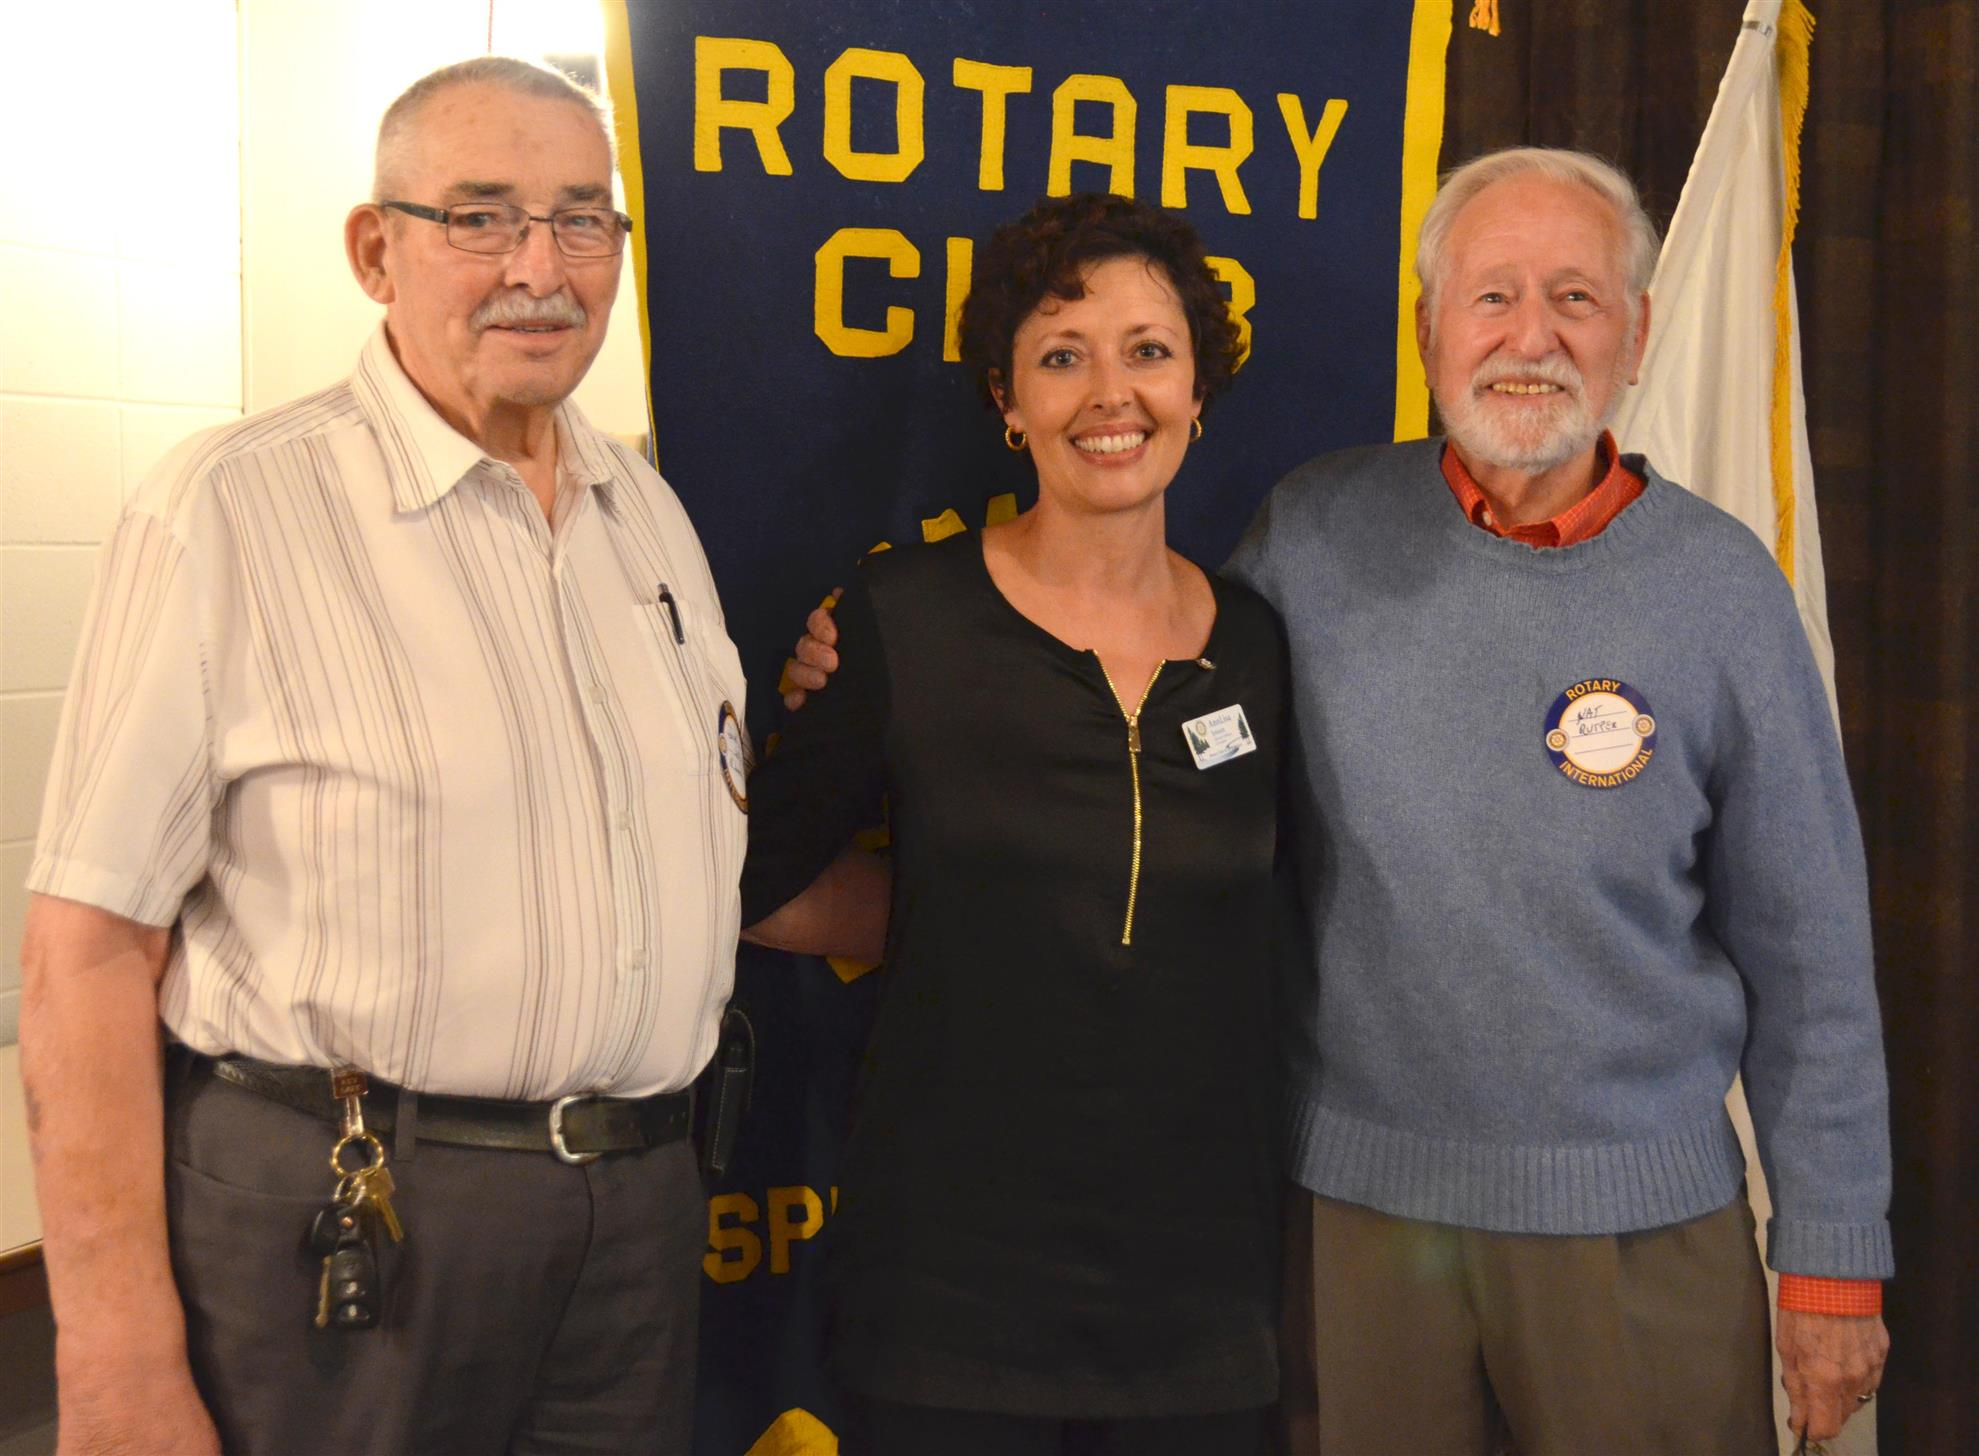 Below: Rotary Club of Spruce Grove president AnnLisa Jensen thanks Dick  Lutz and Nat Rutter for their presentation.